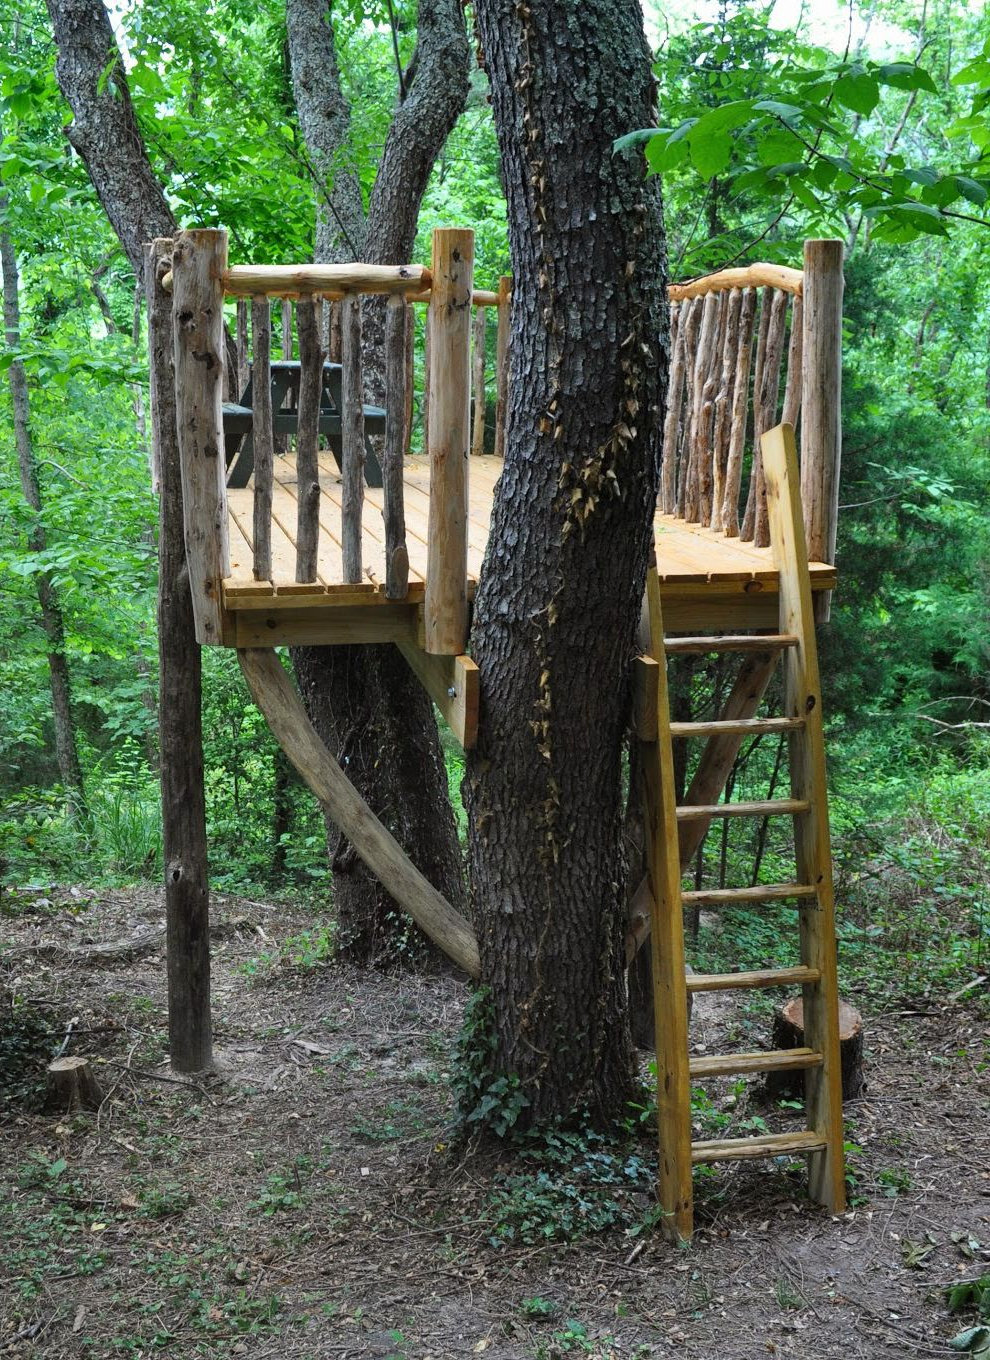 With Kid Safe Rustic Railings An Easy To Maneuver Ladder